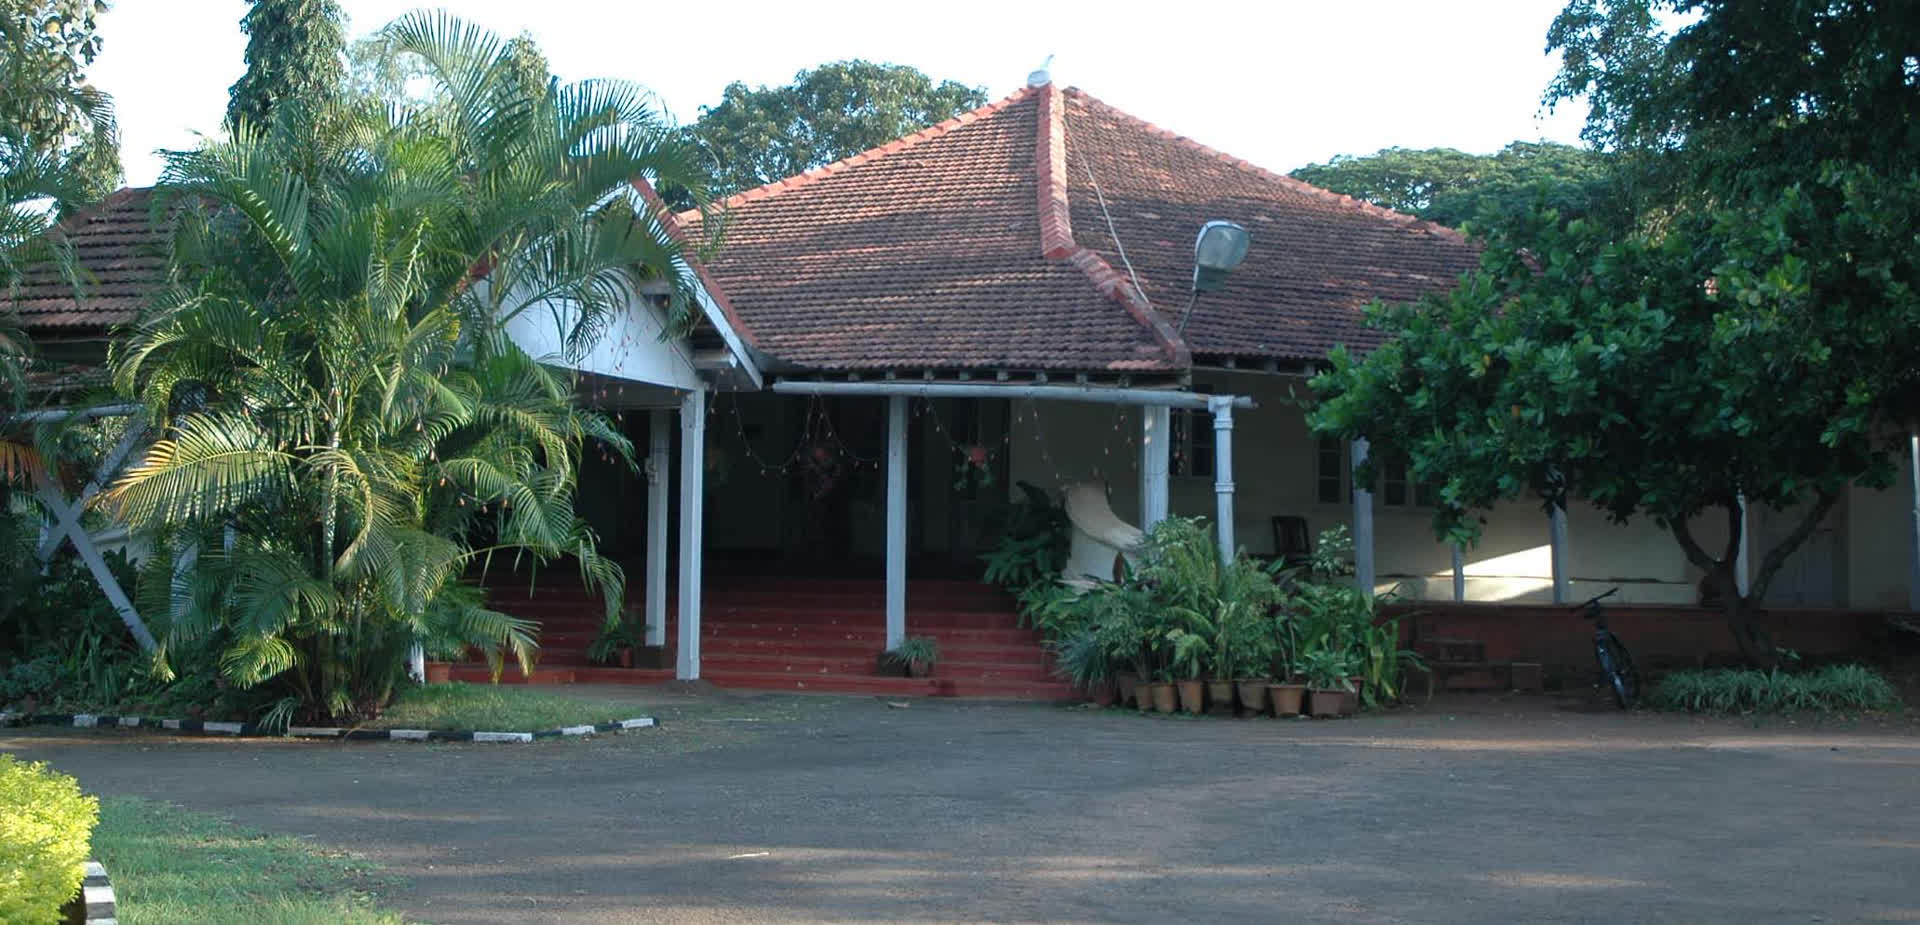 The bungalow at Dharwad